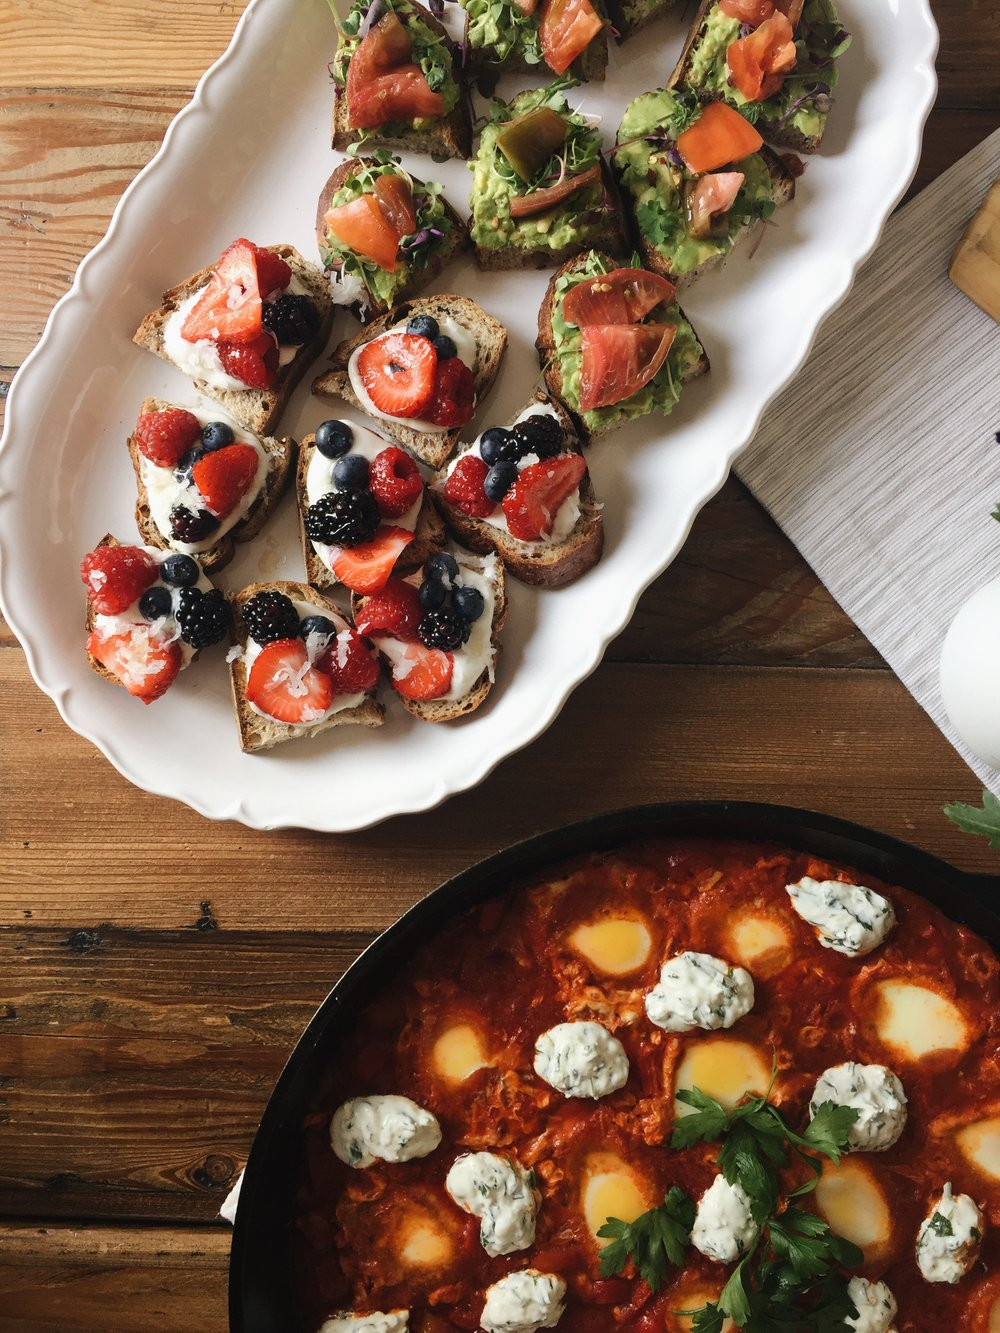 All the toasts + shakshuka!